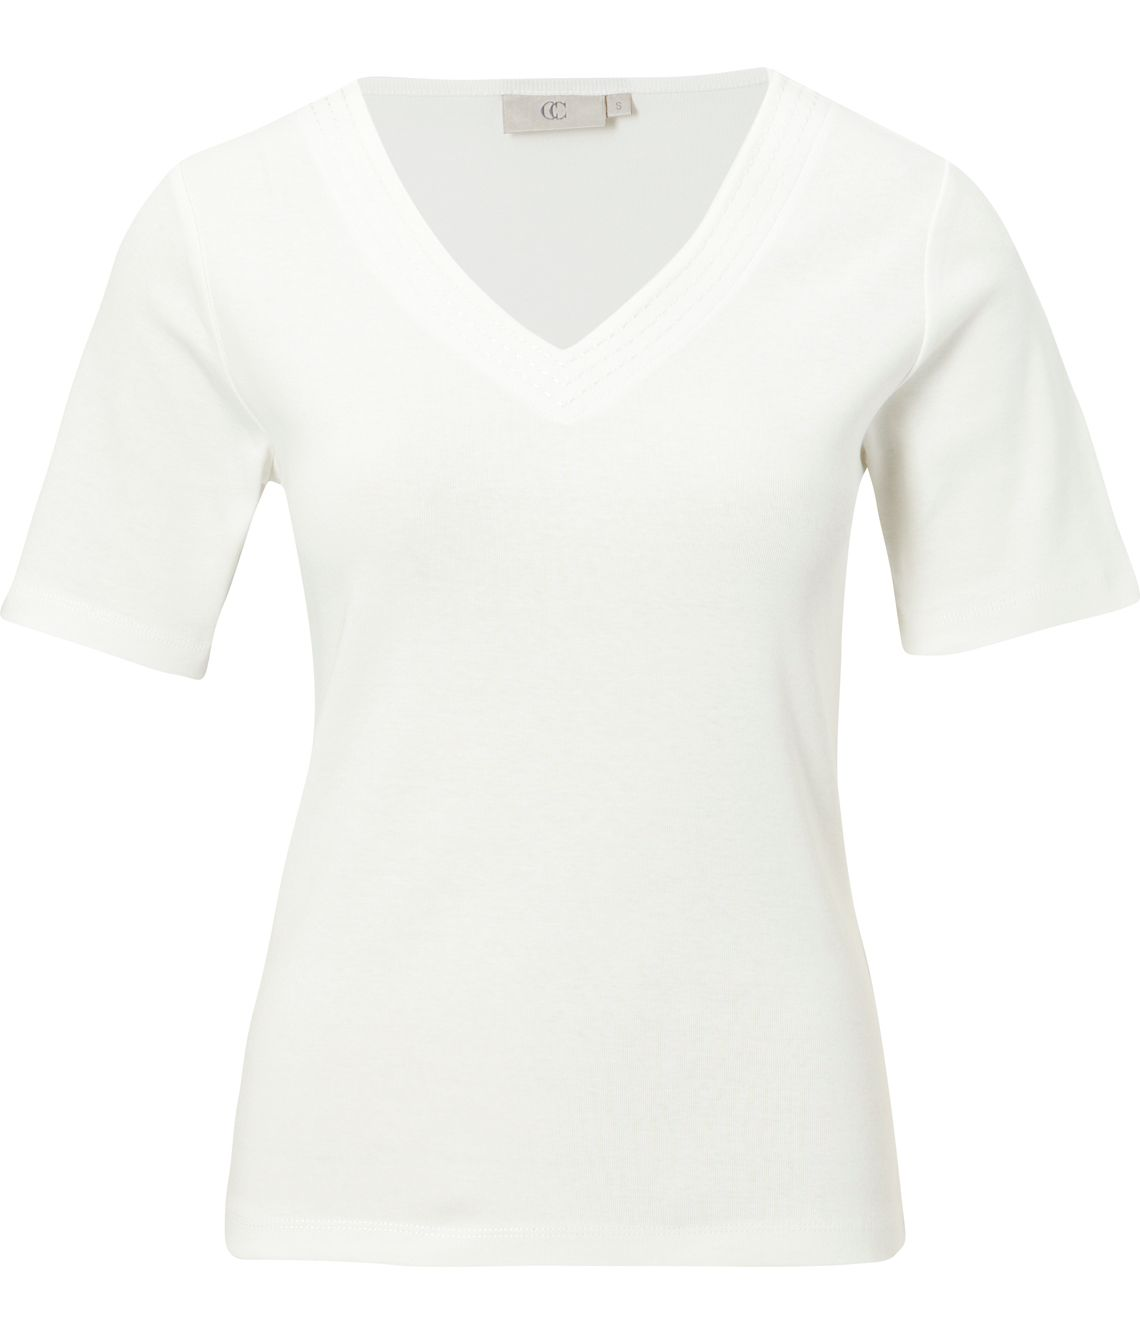 CC Womens CC V neck basic t-shirt 151773487 product image